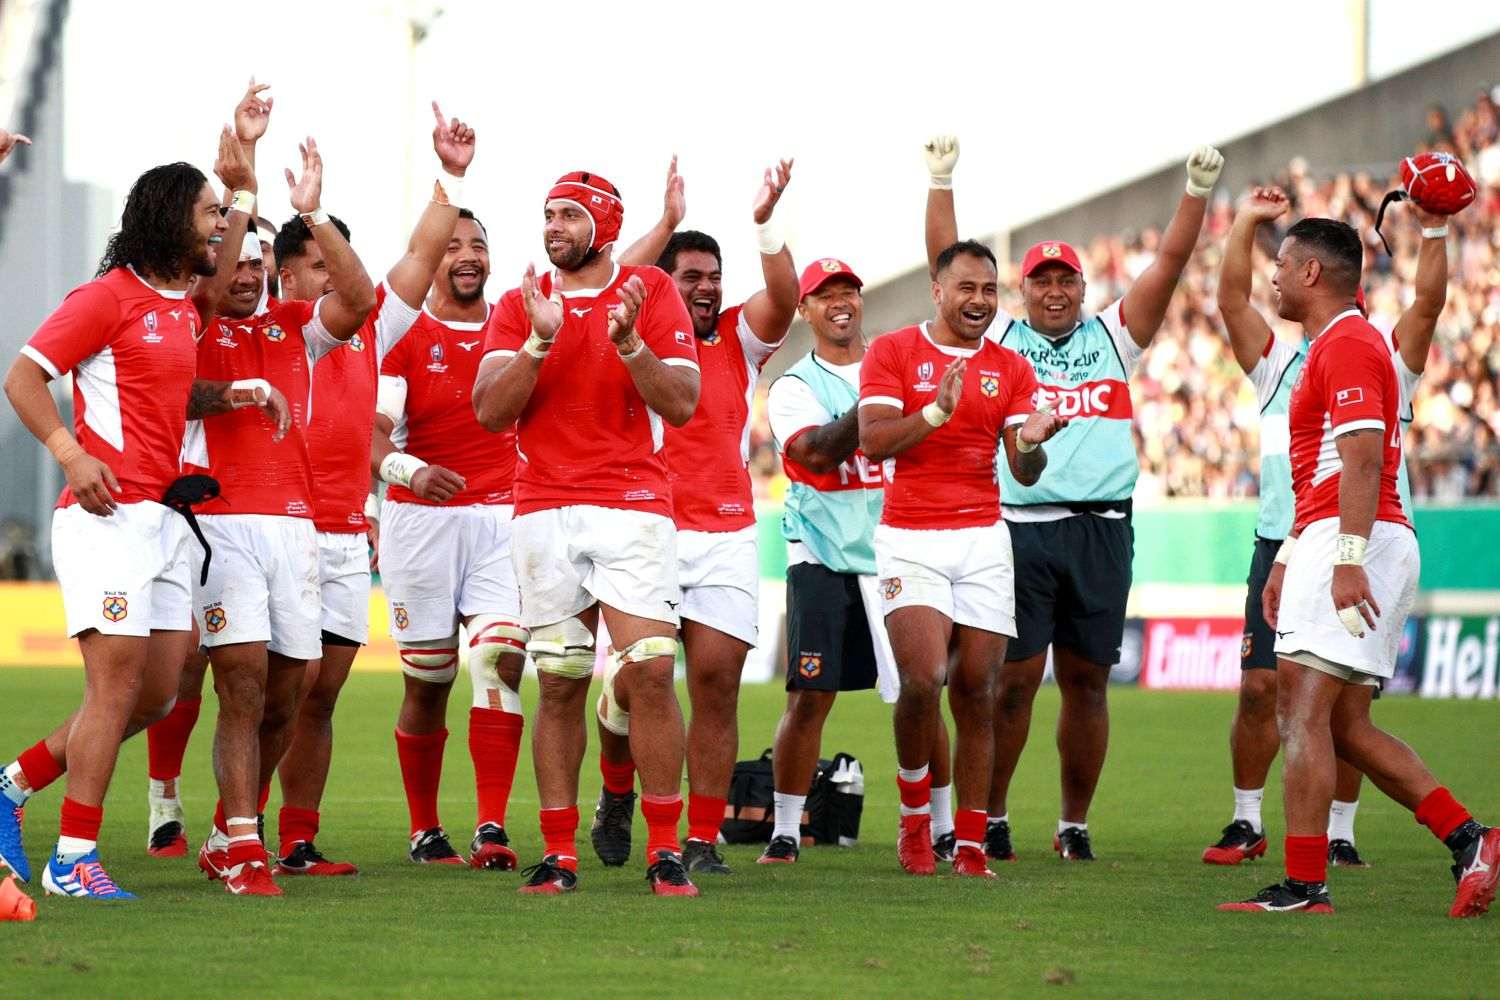 Estados Unidos vs Tonga - Rugby World Cup 2019: Grupo C